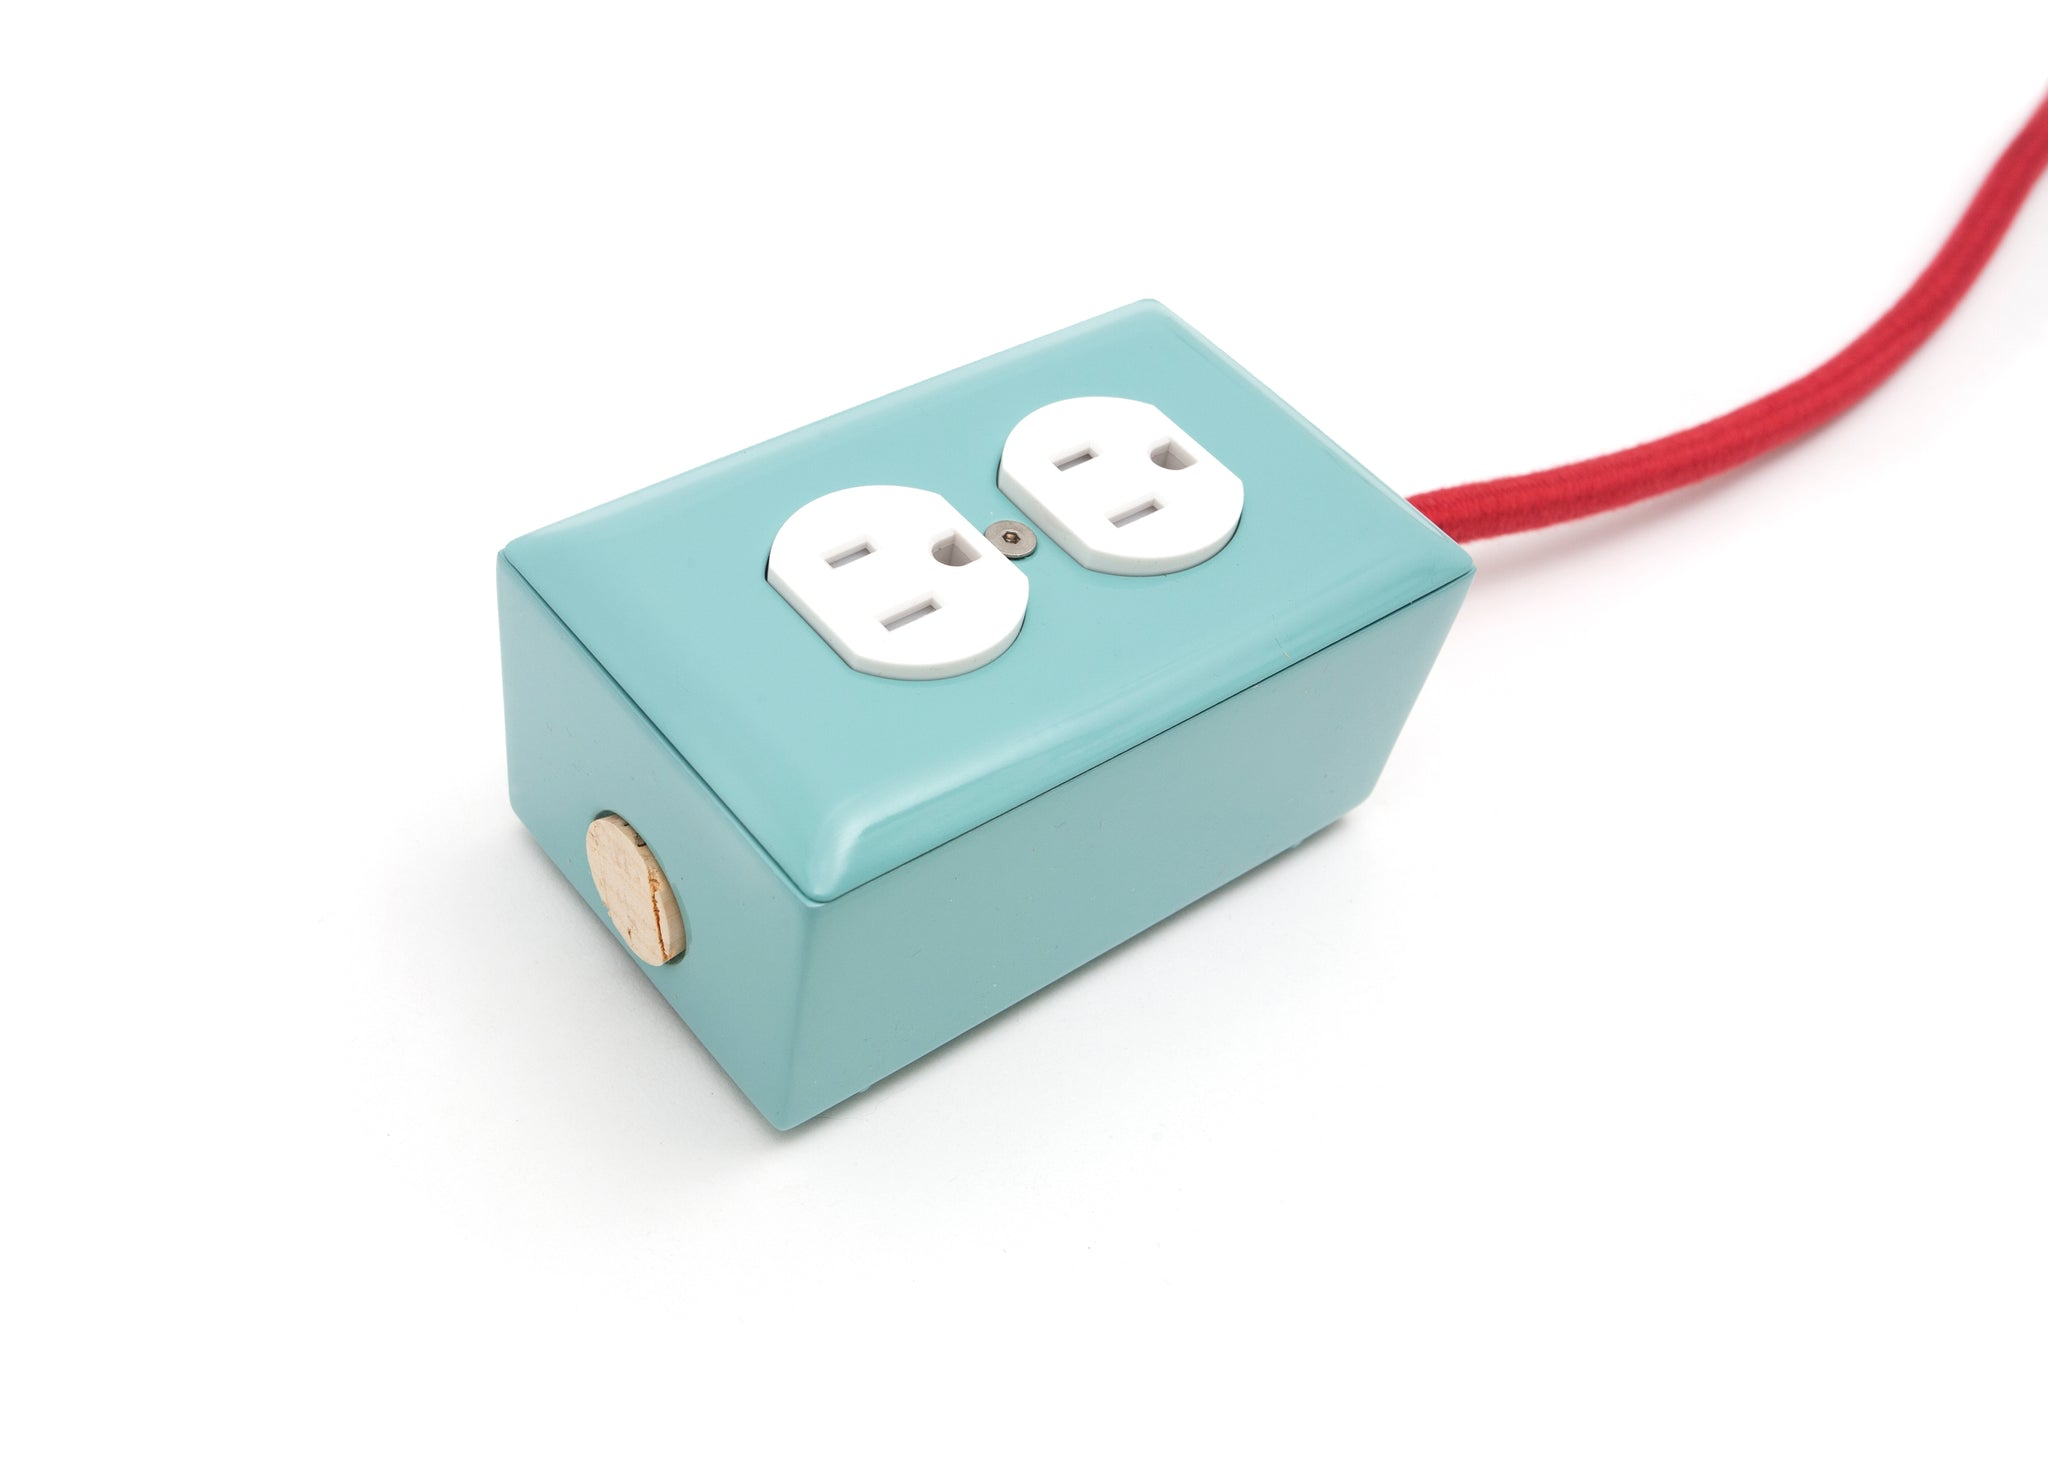 Exto Mint for CordPDX - A Modern Dual-Tamper-Resistant Outlet, 13-AMP Extension Cord